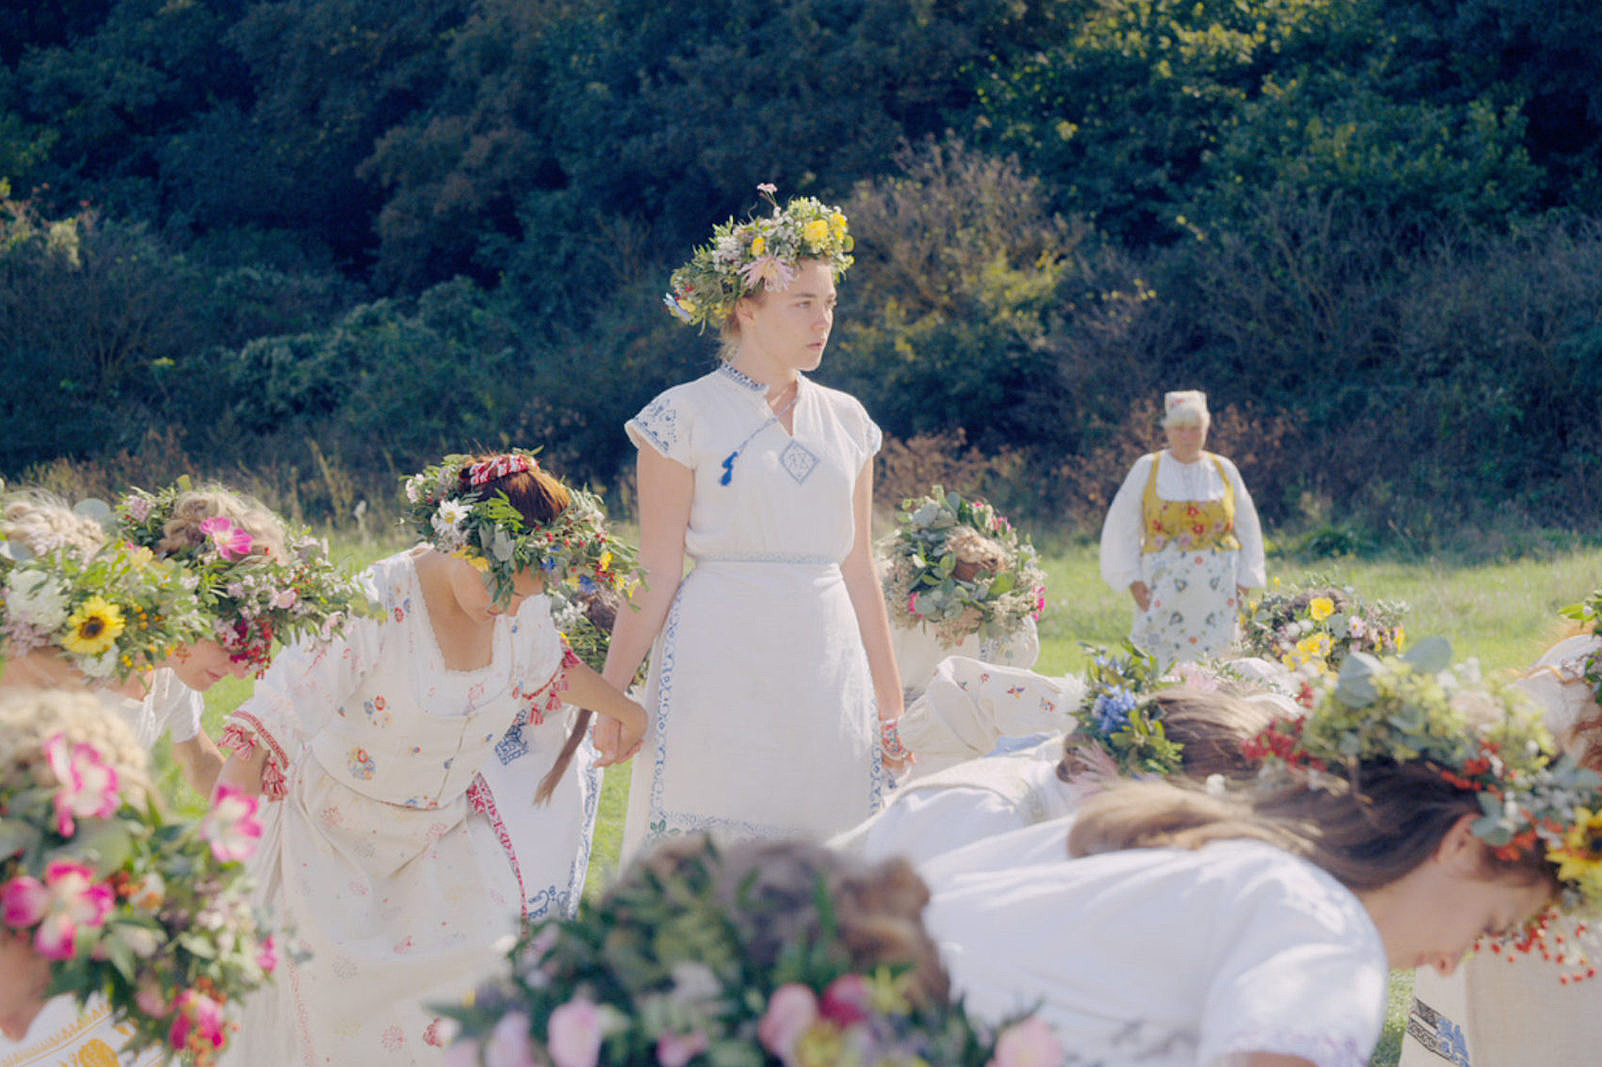 Midsommar Review: The Horrors of Love (and Bizarre Pagan Rituals)